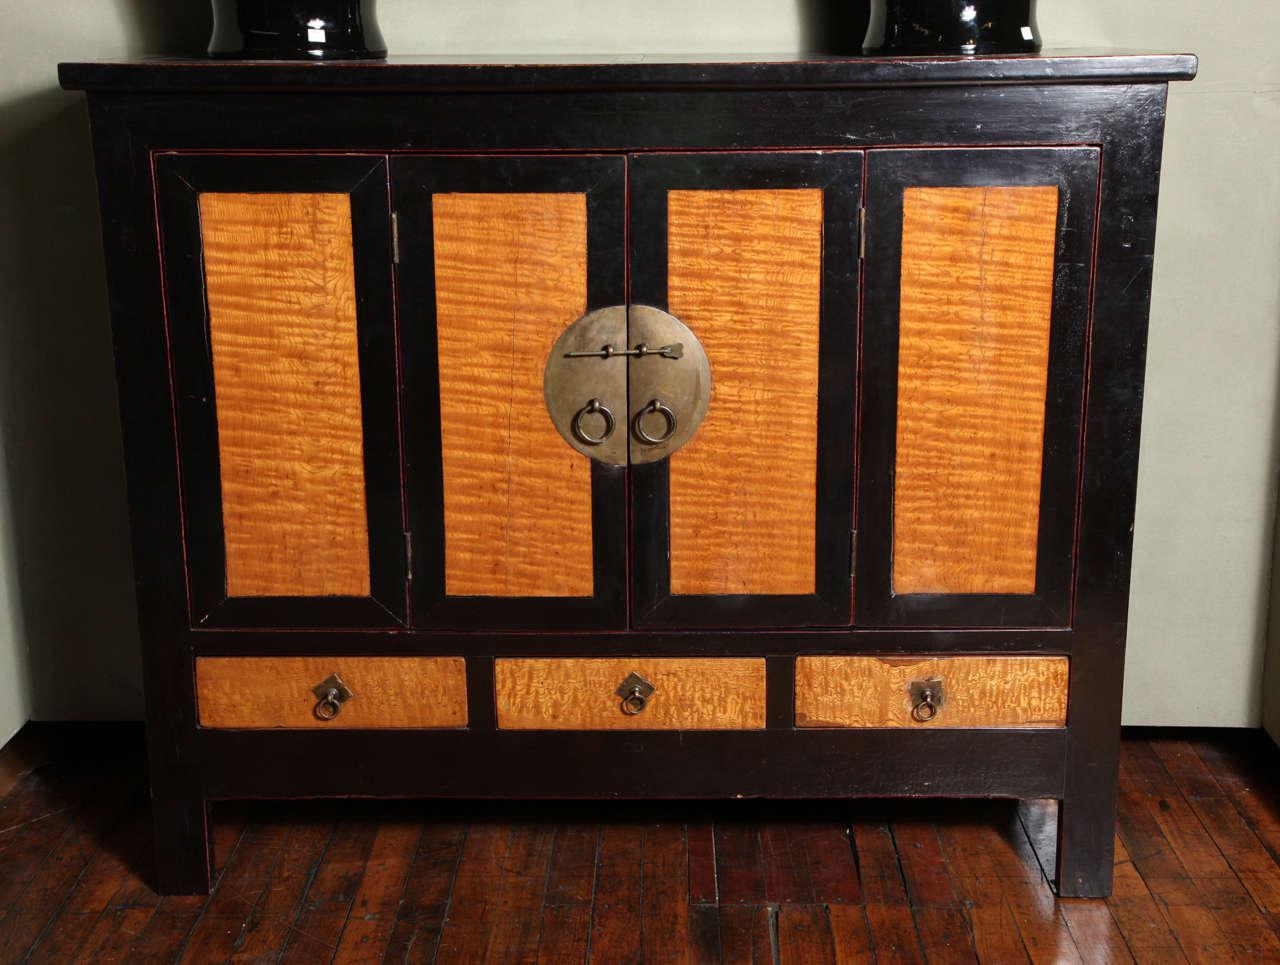 Late Qing Dynasty Black Lacquer And Burl Wood Cabinet With Accordion Doors    Image 2 Of